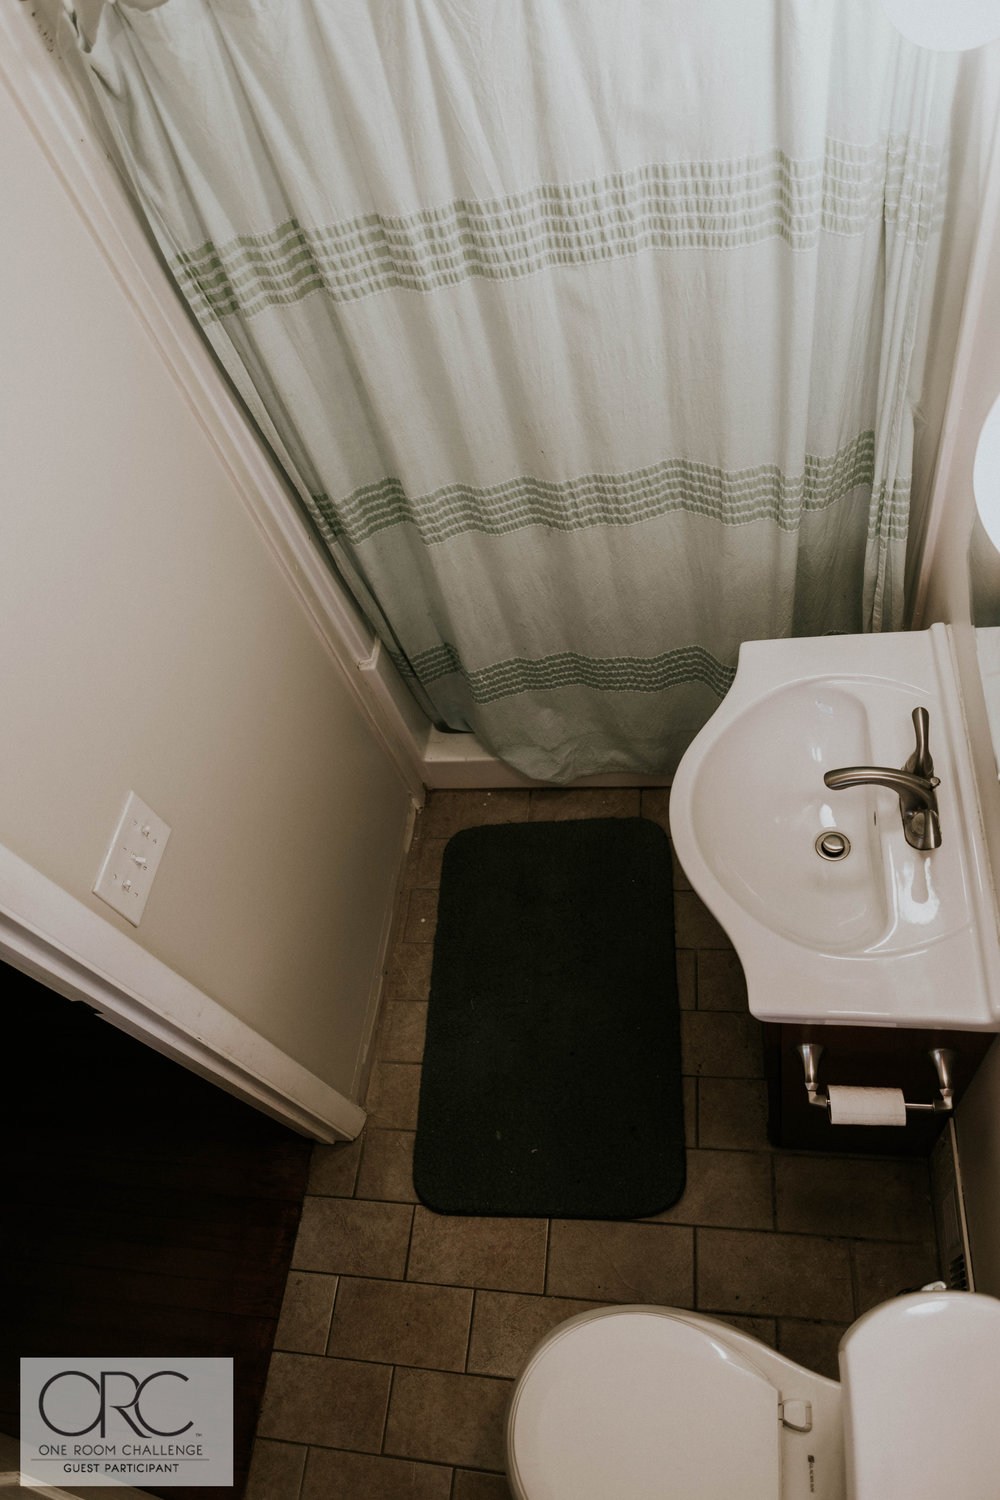 GUEST PARTICIPANT ONE ROOM CHALLENGE MASTER BATHROOM 4 (1 of 1).jpg